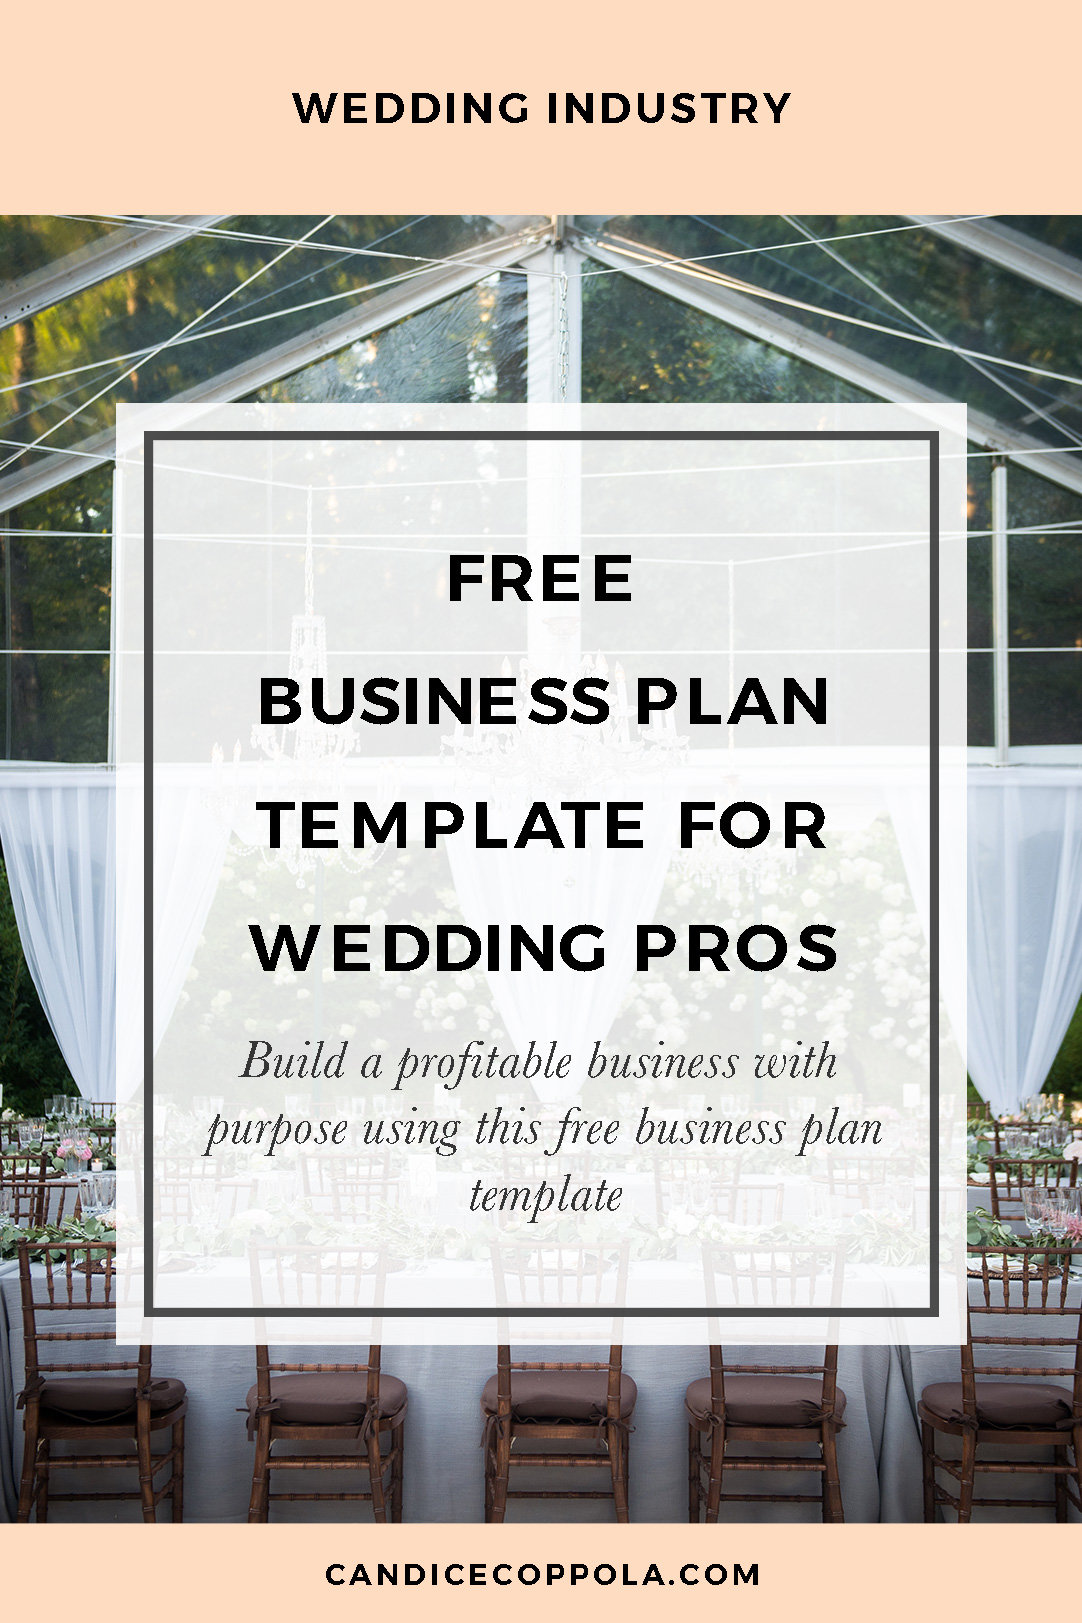 Are you a business owner in the wedding industry? This free business plan template will help kick-start strategies in your business. This template has been specially created for wedding pros like you!